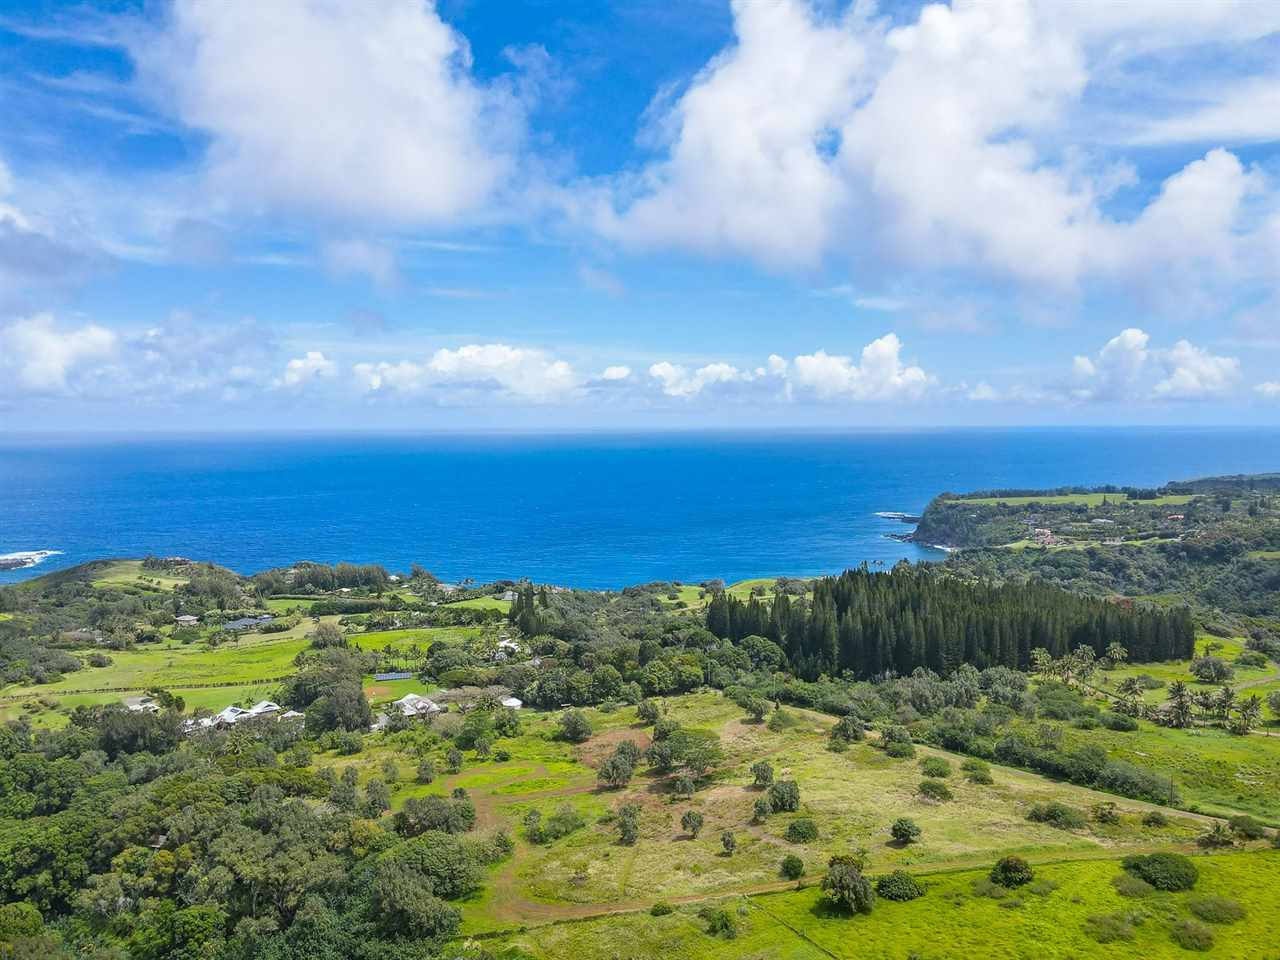 Manawai Pl Lot 3 Haiku, Hi 96708 vacant land - photo 6 of 19